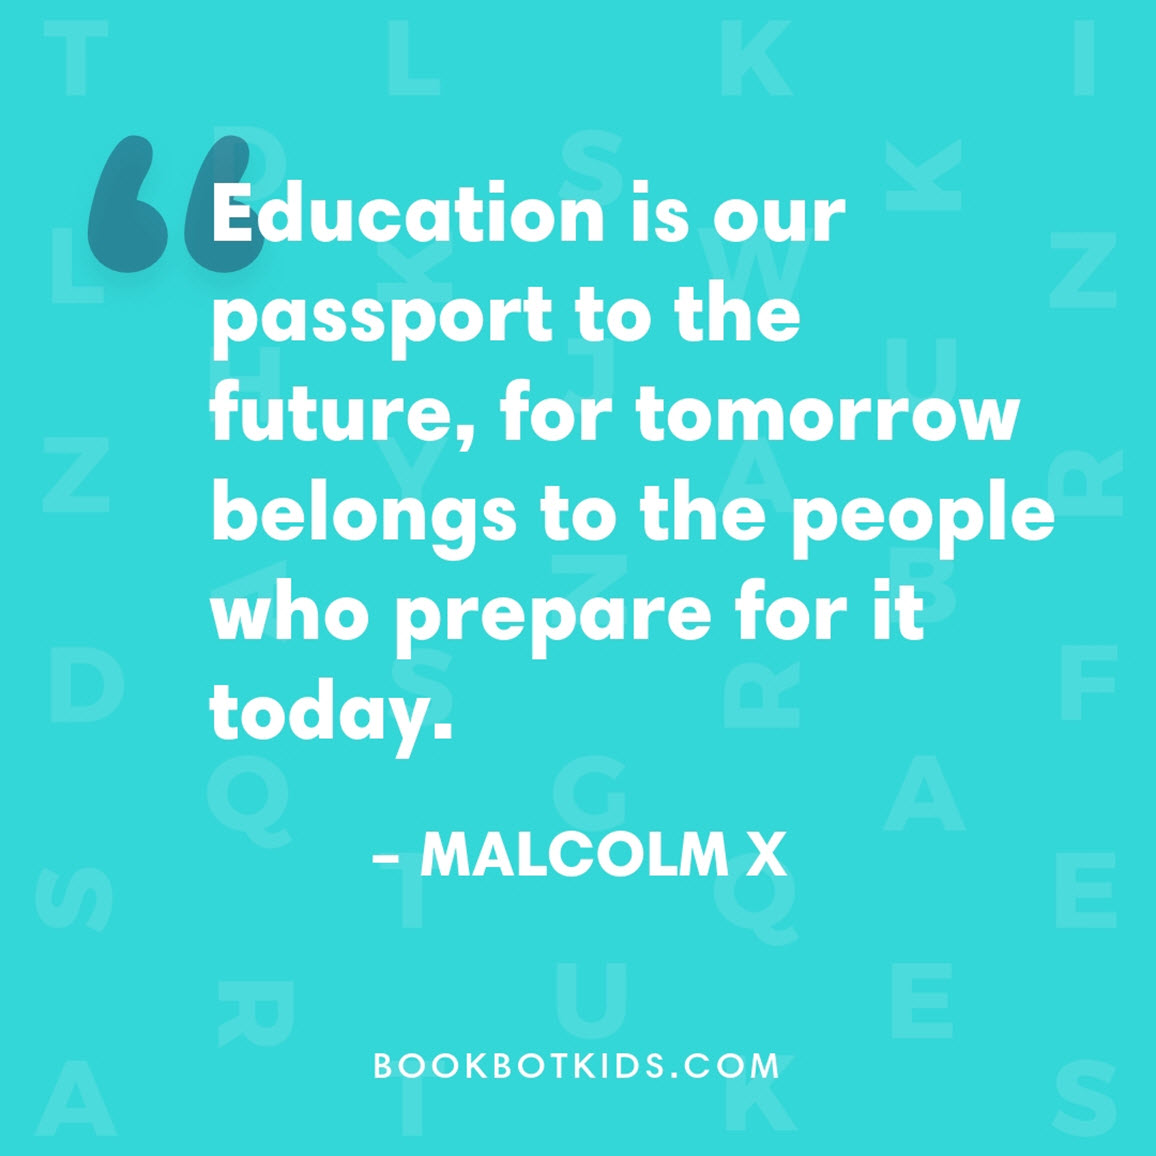 Education is our passport to the future, for tomorrow belongs to the people who prepare for it today. – Malcolm X